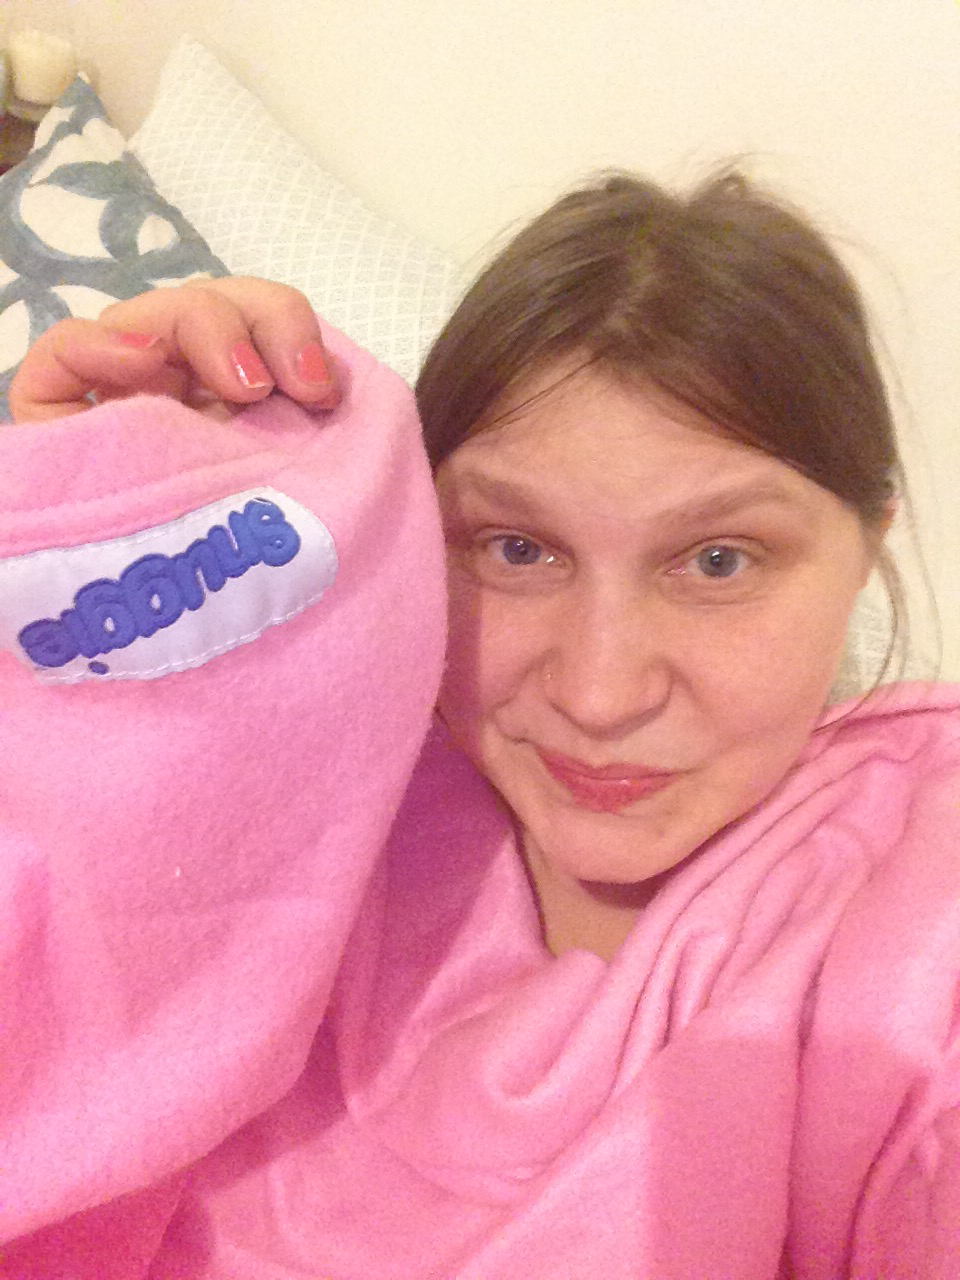 Me and my pink snuggie.